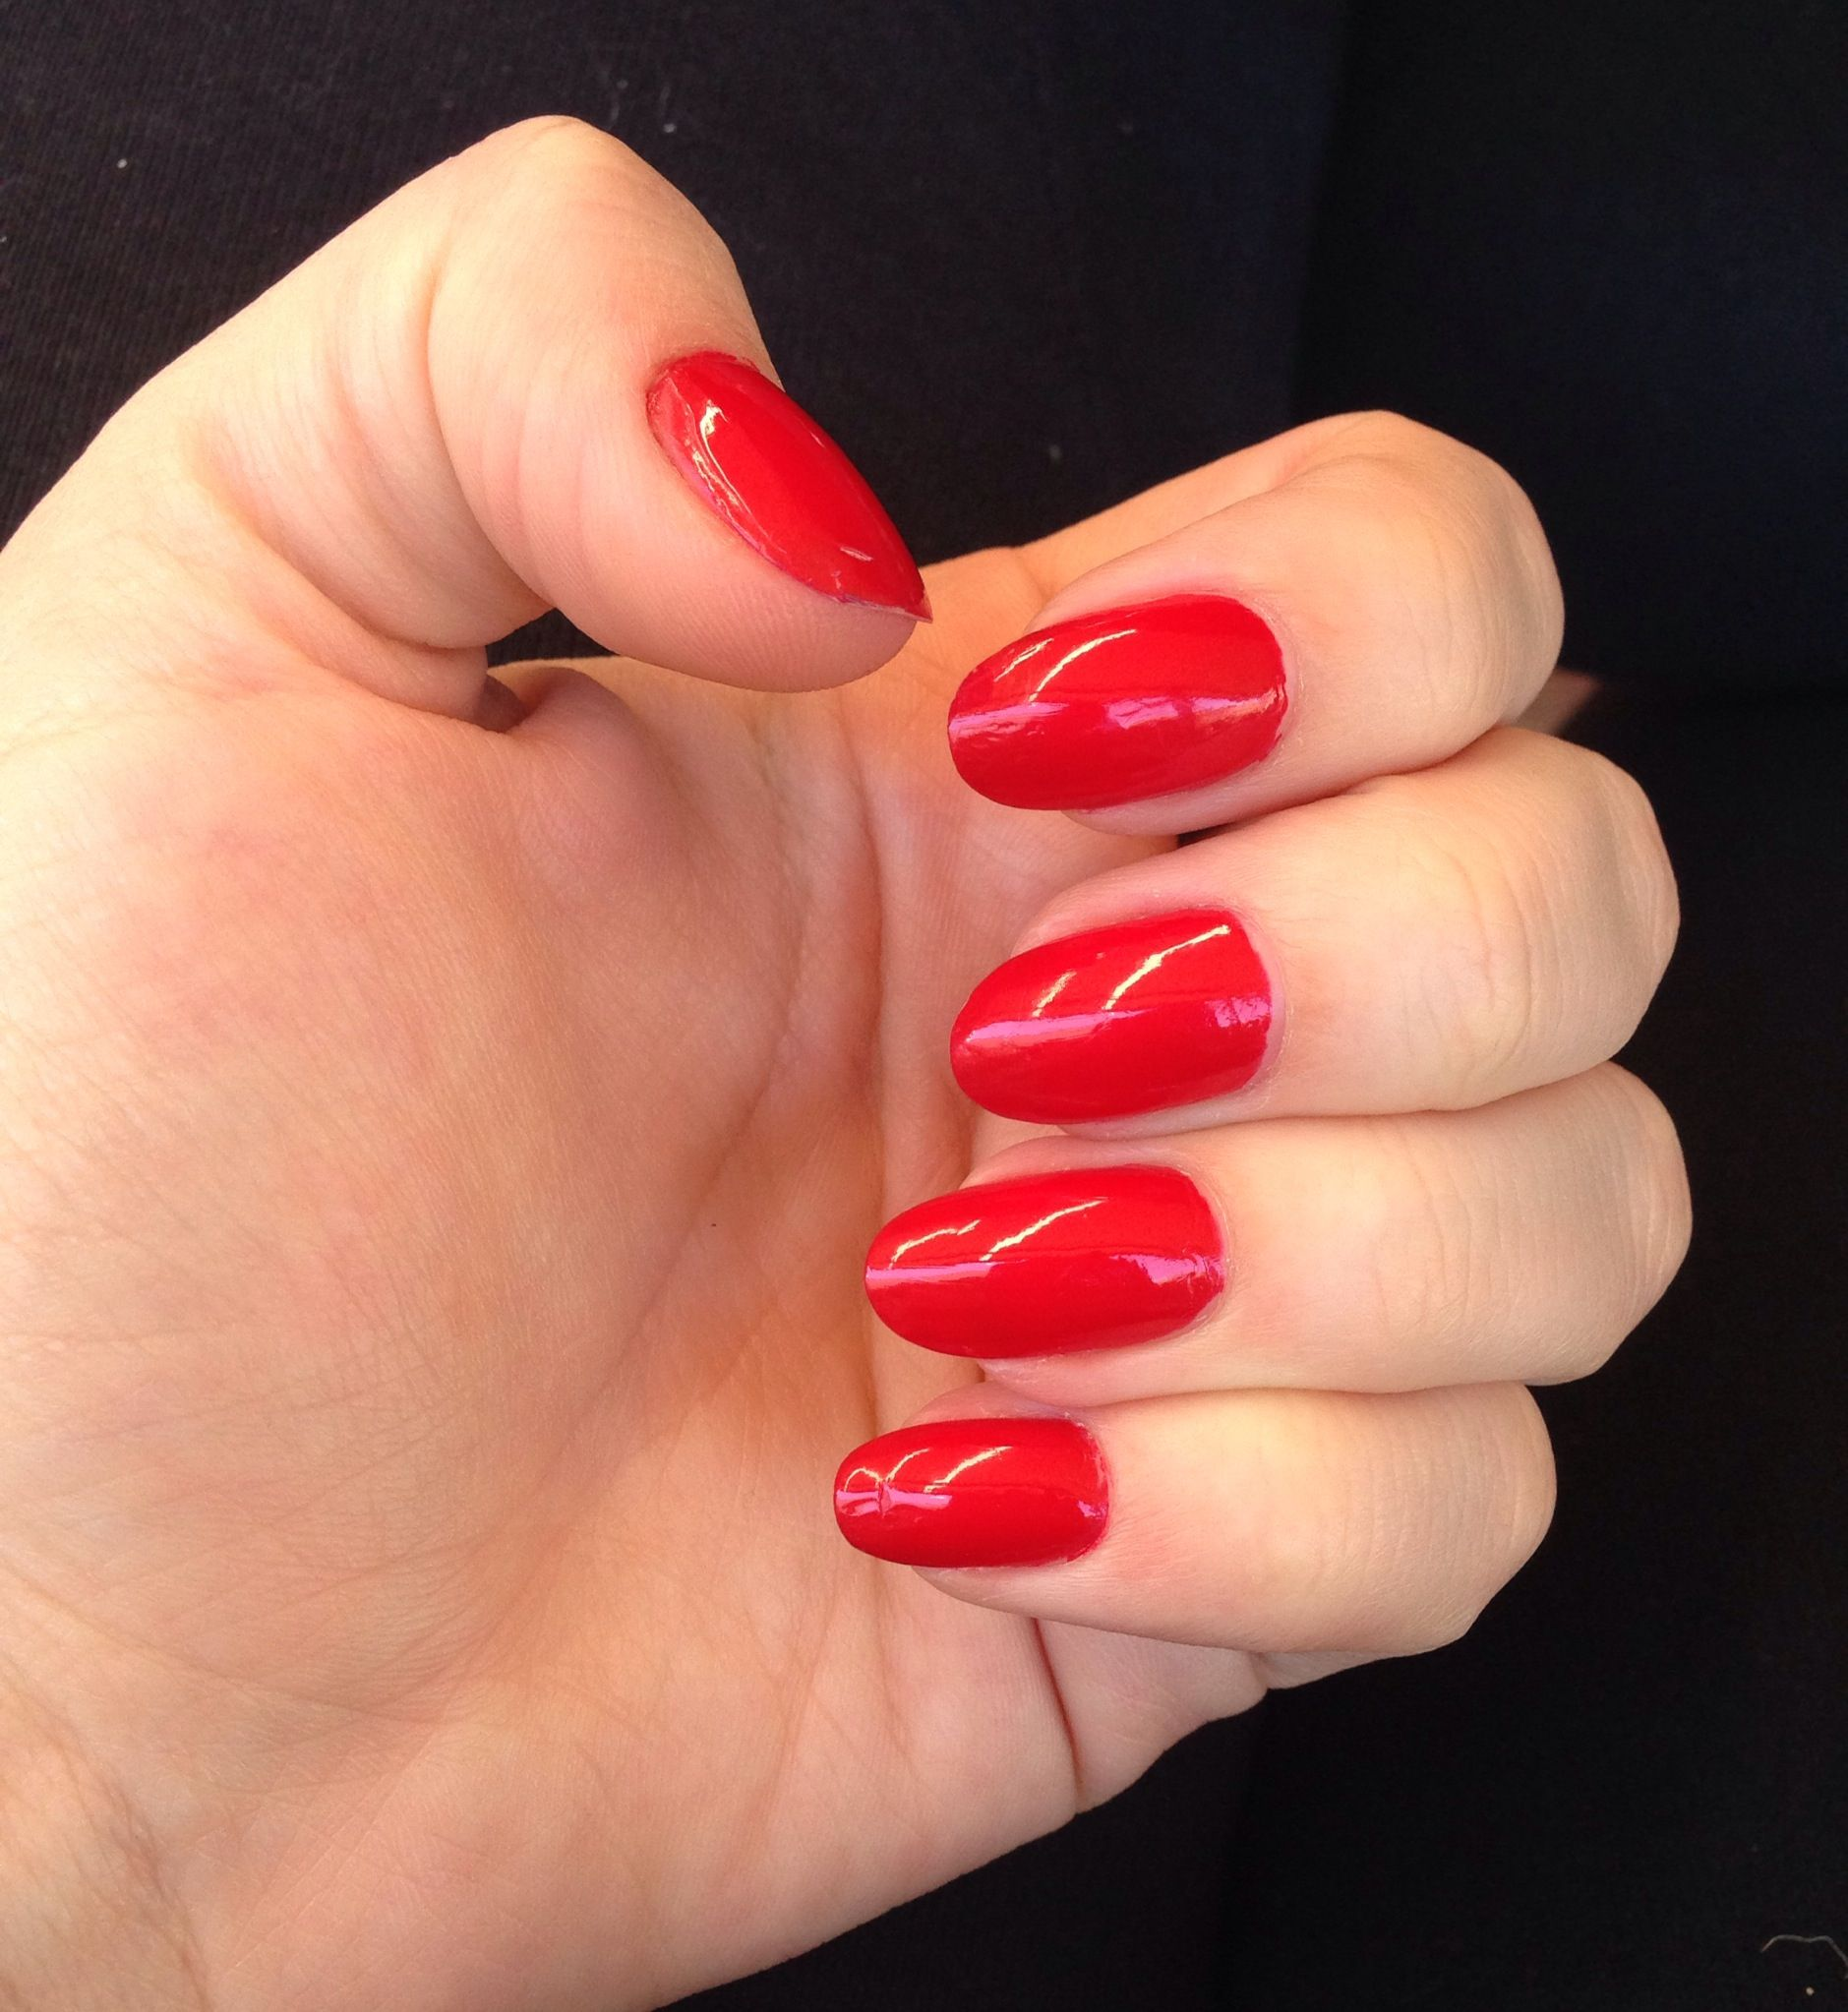 Round red nails | Makeup & Hair | Pinterest | Red nails, Double team ...